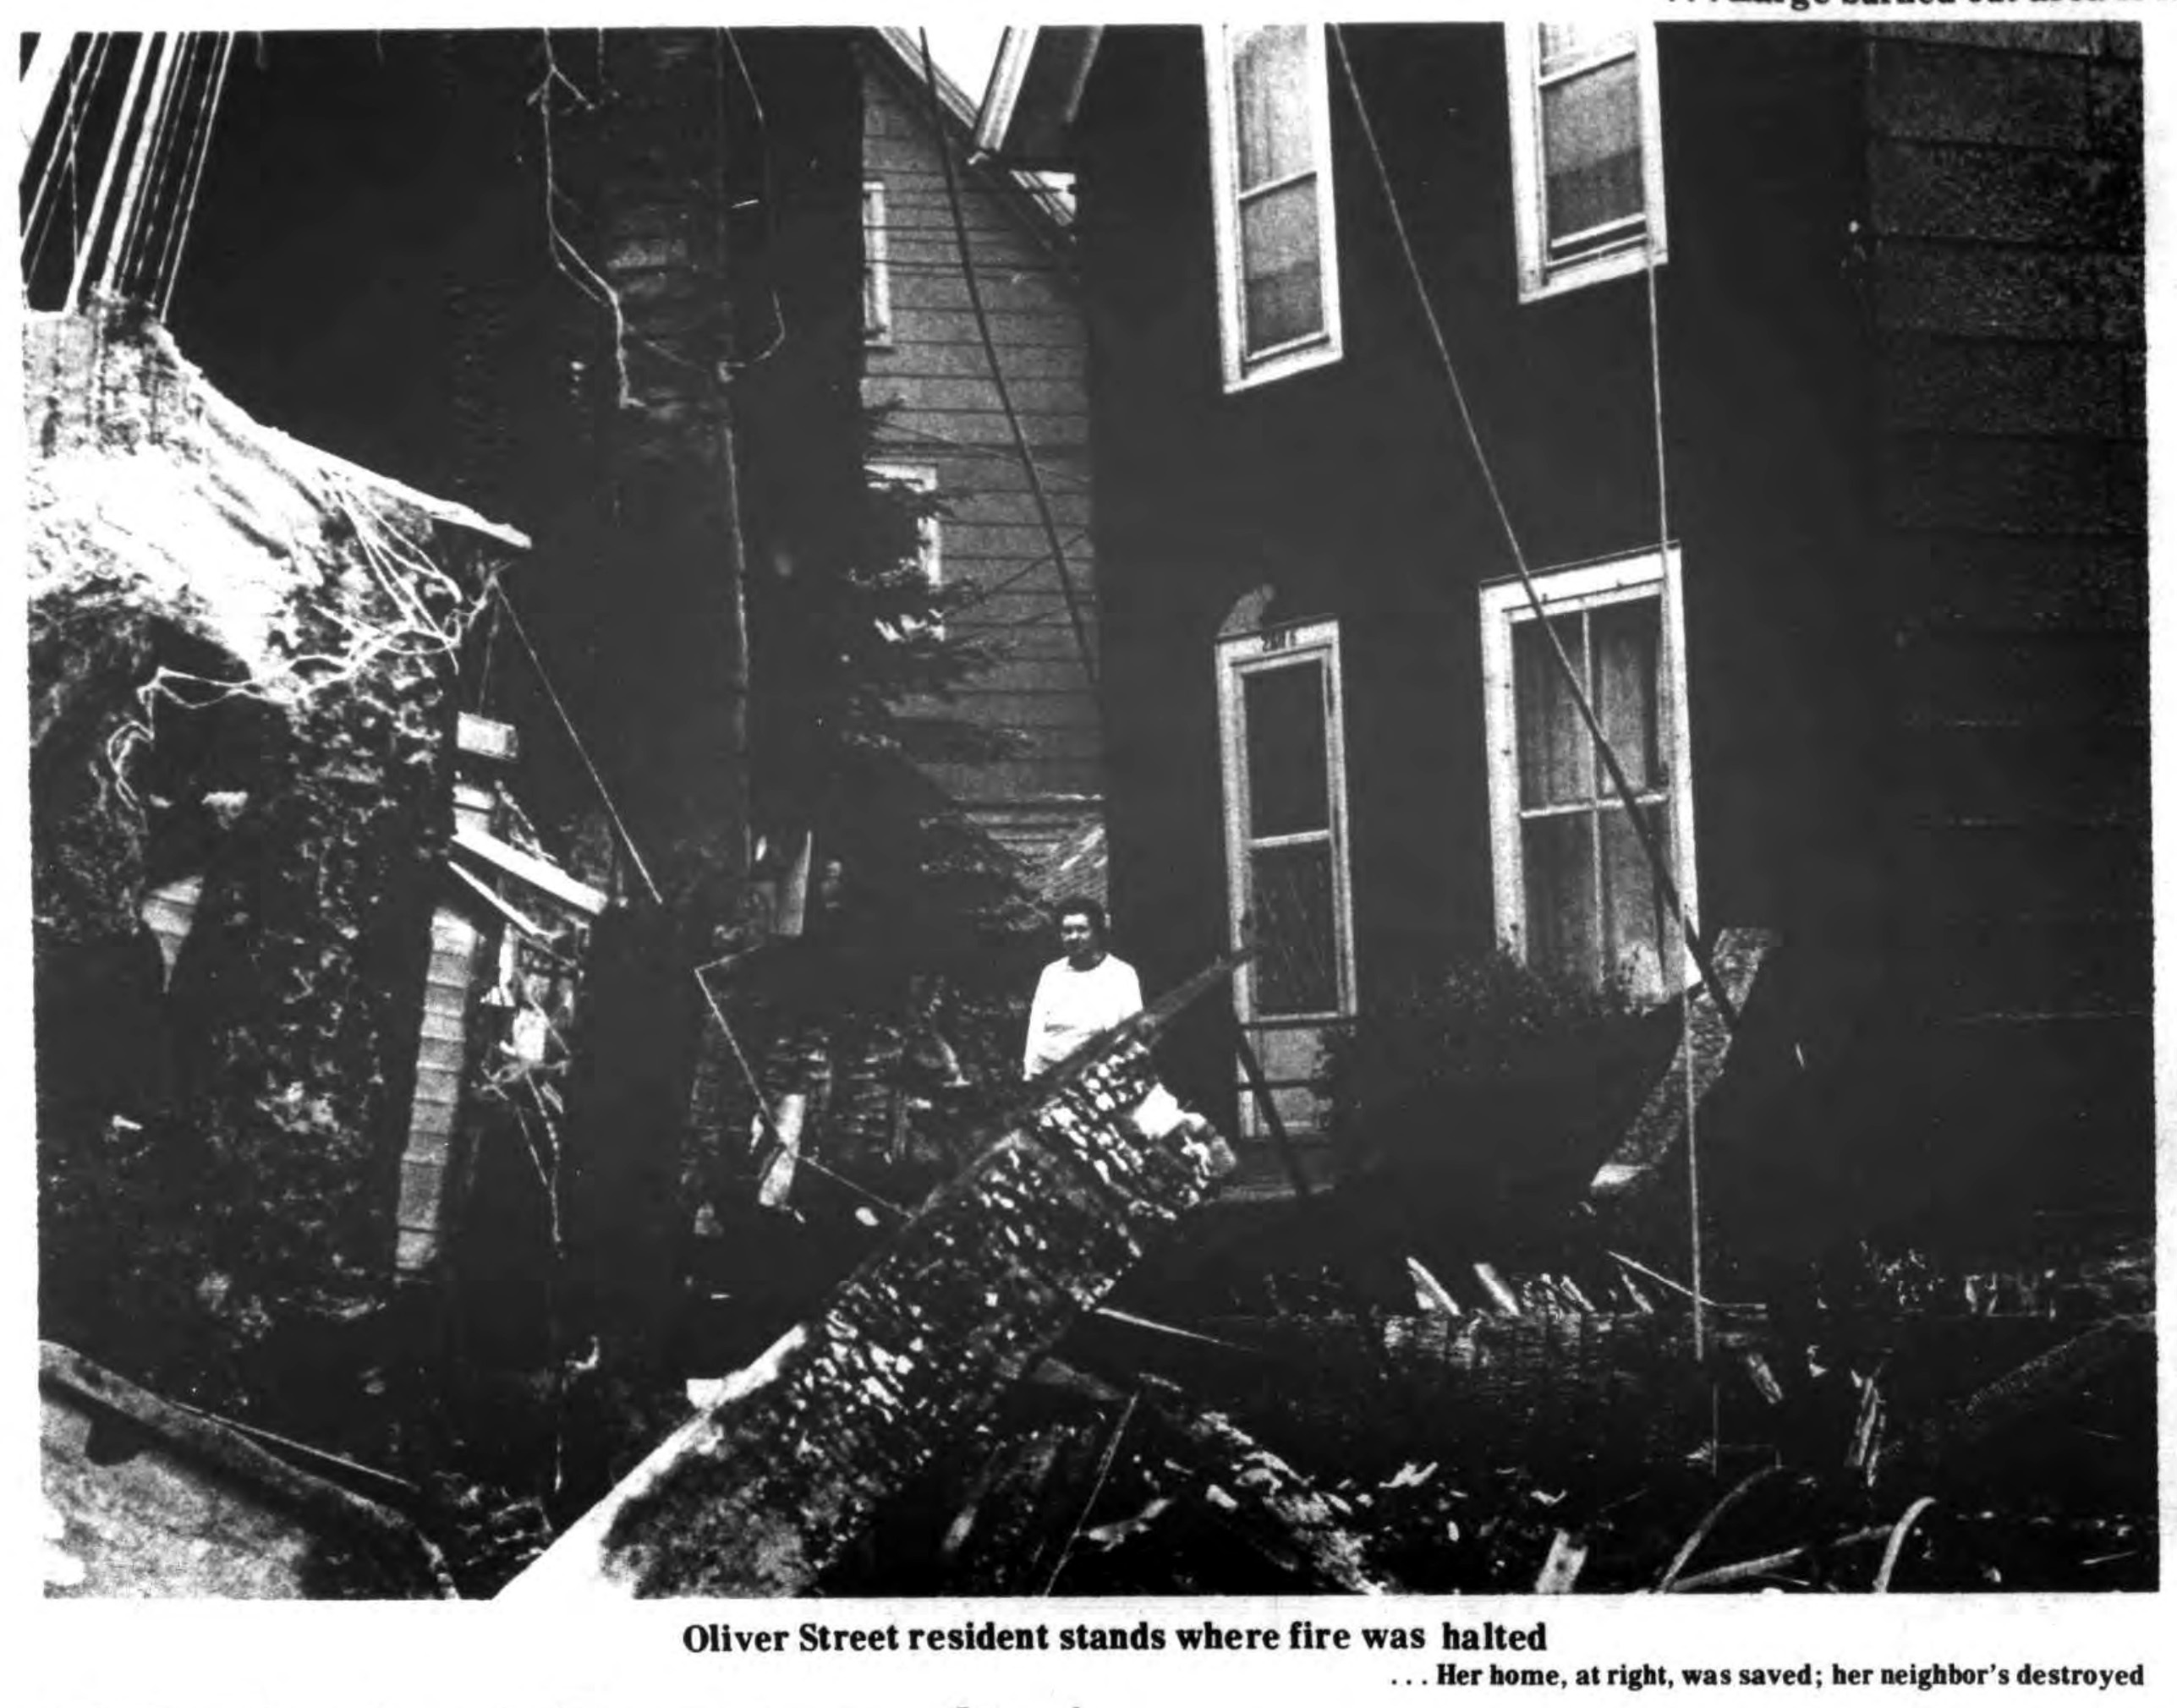 Oliver St resident stands where home was saved, Auto-Wheel fire, photo (Tonawanda News, 1972-05-31).jpg